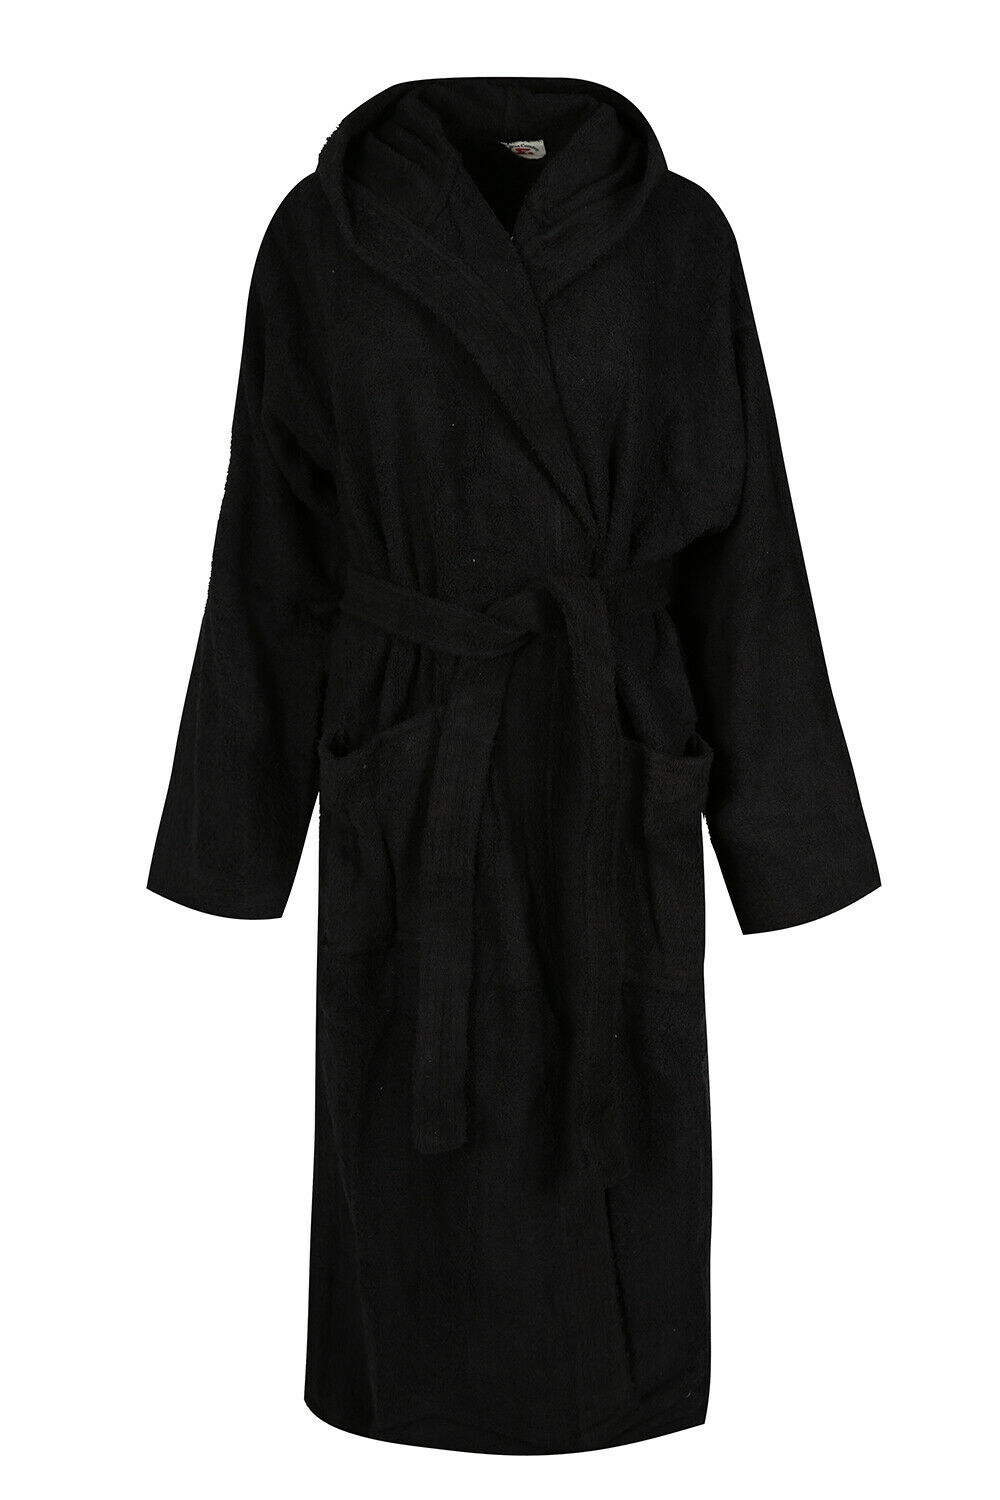 Hooded Terry Bath Robe Black Women 100% Cotton Toweling Dres